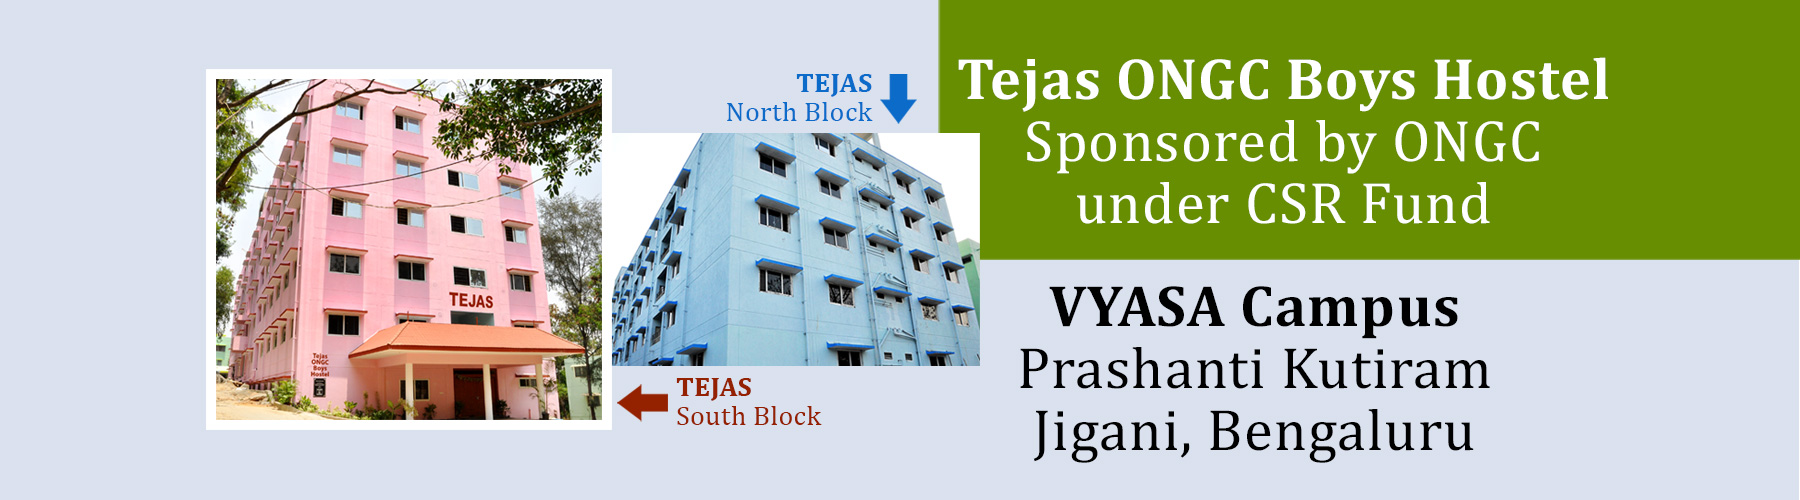 Tejas-Boys-Hostel